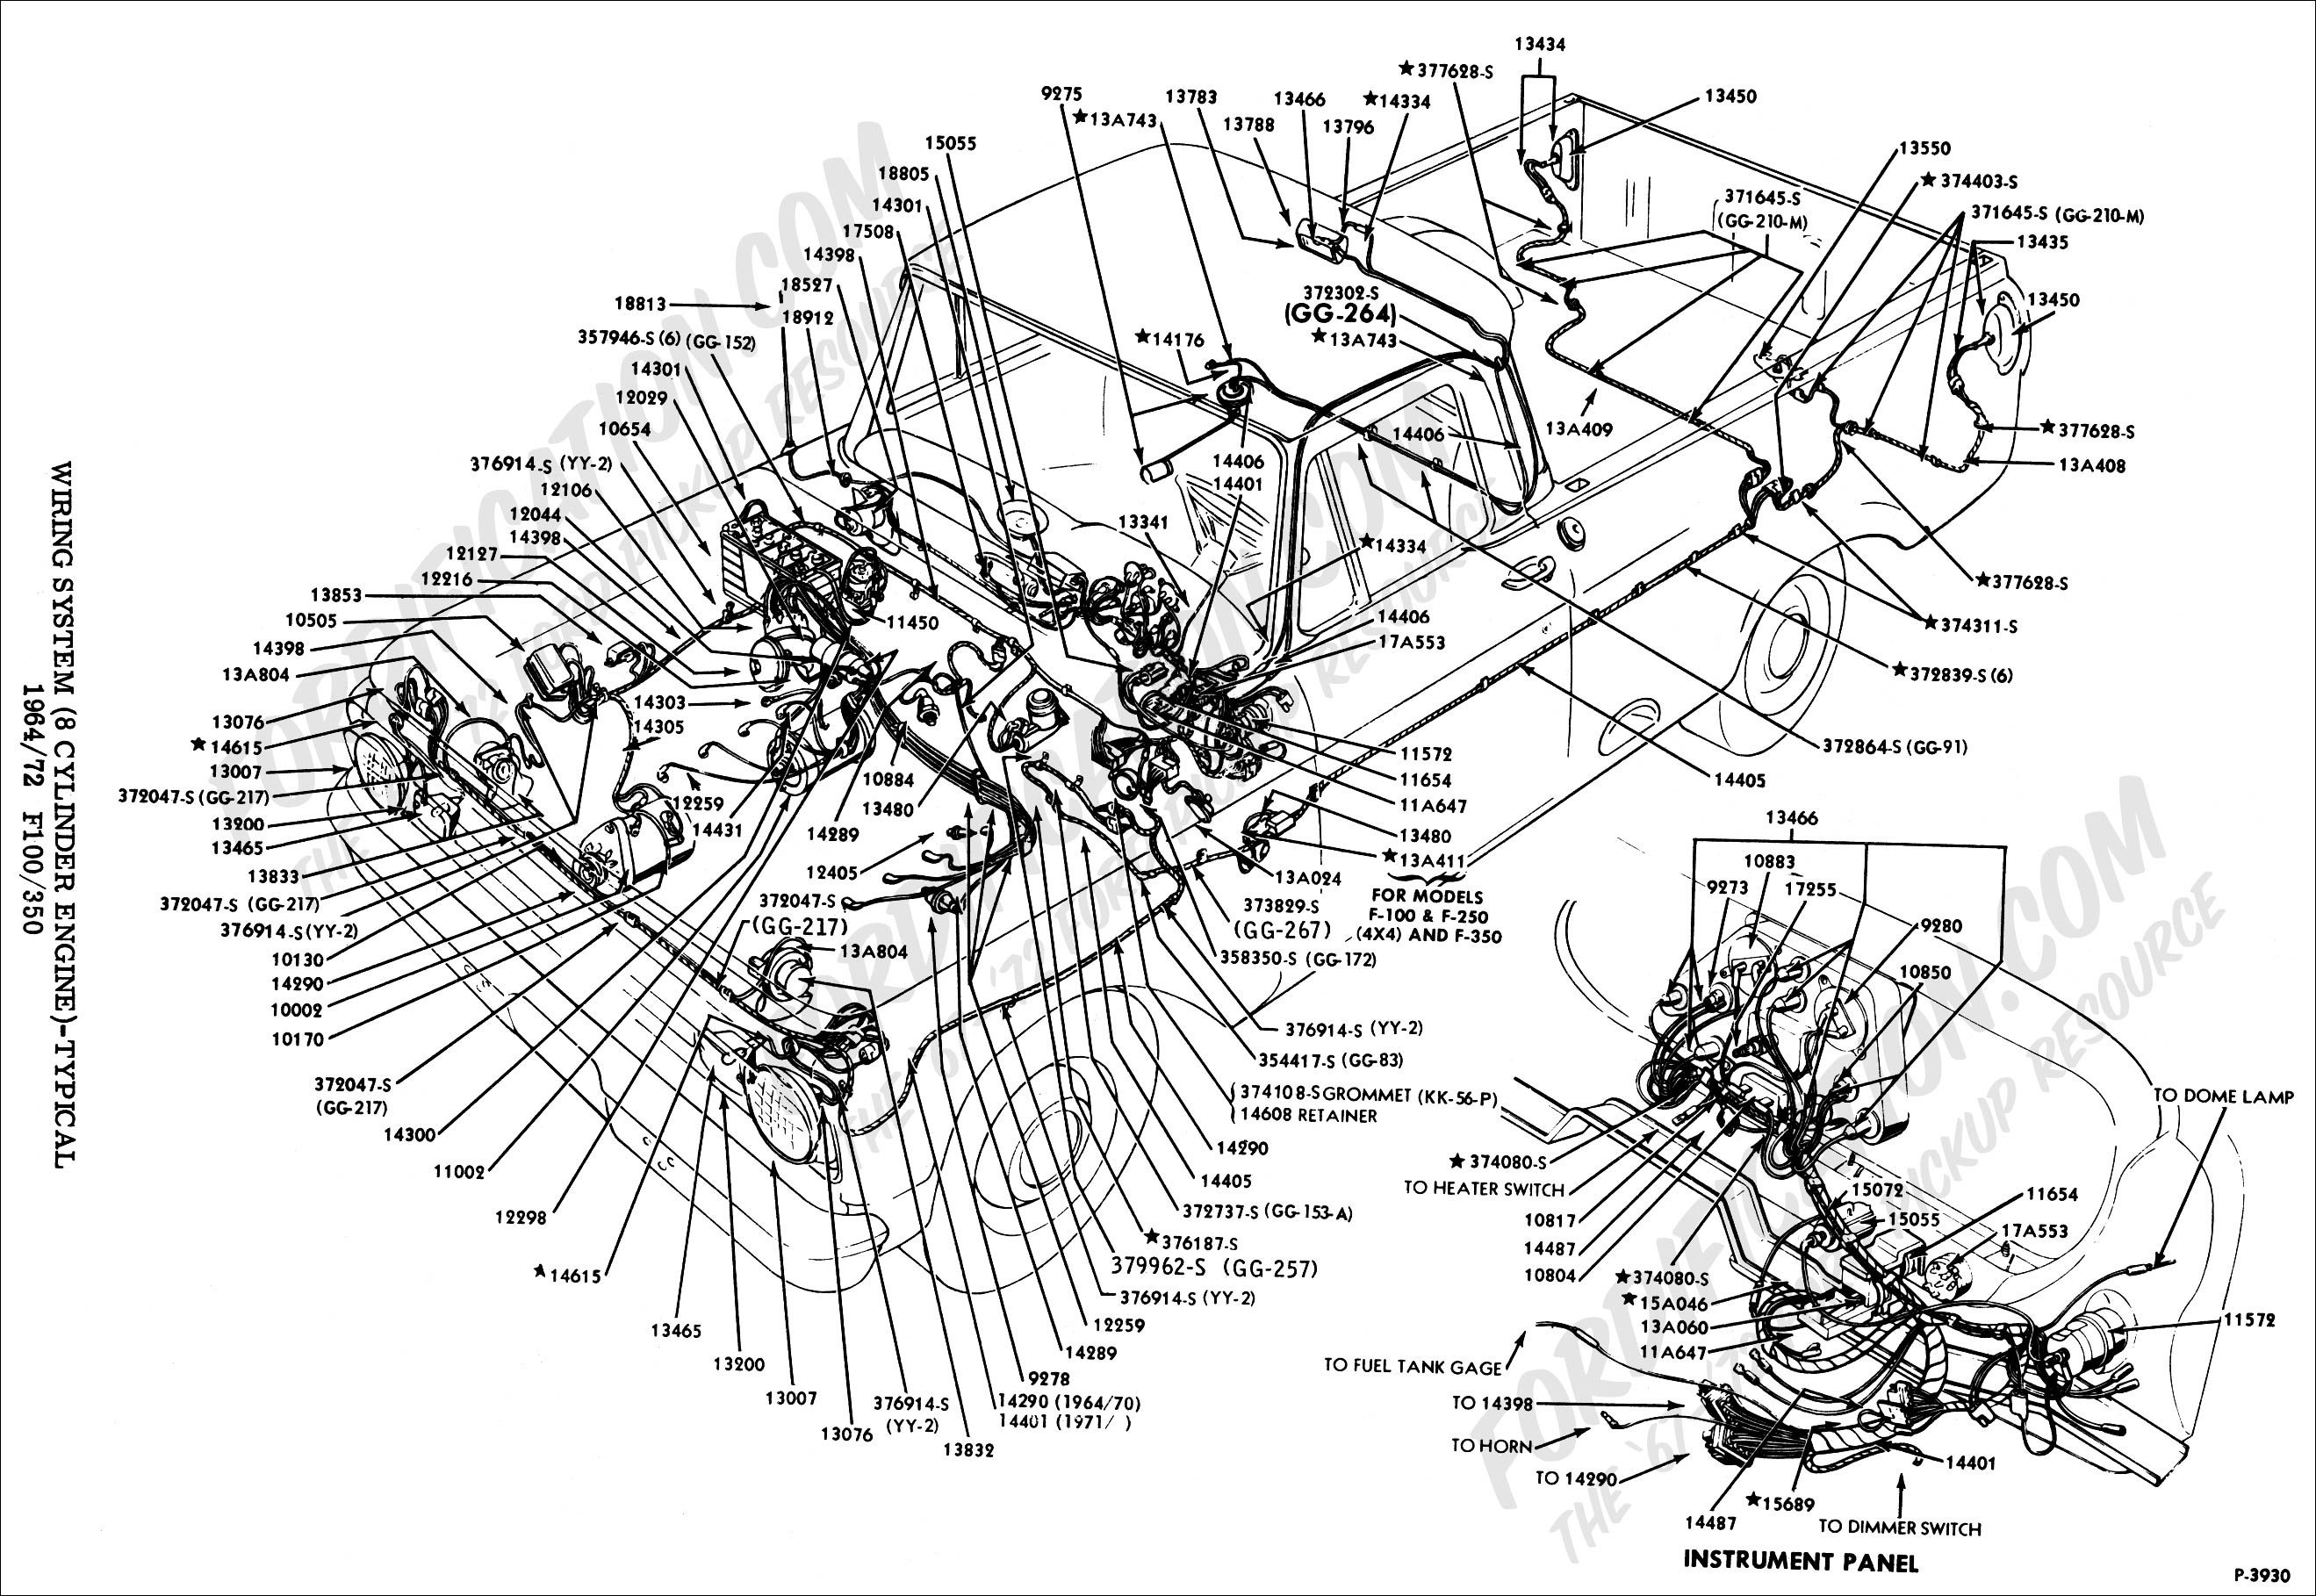 1963 Ford Dump Truck Wiring Diagrams | Online Wiring Diagram  Ford Ranchero Wiring Diagram on amc amx wiring diagrams, chrysler lebaron wiring diagrams, volvo 240 wiring diagrams, dodge dakota wiring diagrams, jeep wrangler wiring diagrams, imperial wiring diagrams, ford ranchero seats, peterbilt wiring diagrams, ford ranchero engine, oldsmobile alero wiring diagrams, mercury sable wiring diagrams, ford ranchero parts, jeep cj wiring diagrams, dodge ramcharger wiring diagrams, jeep patriot wiring diagrams, pontiac grand prix wiring diagrams, oldsmobile 98 wiring diagrams, plymouth barracuda wiring diagrams, chrysler concorde wiring diagrams, saab 9-3 wiring diagrams,